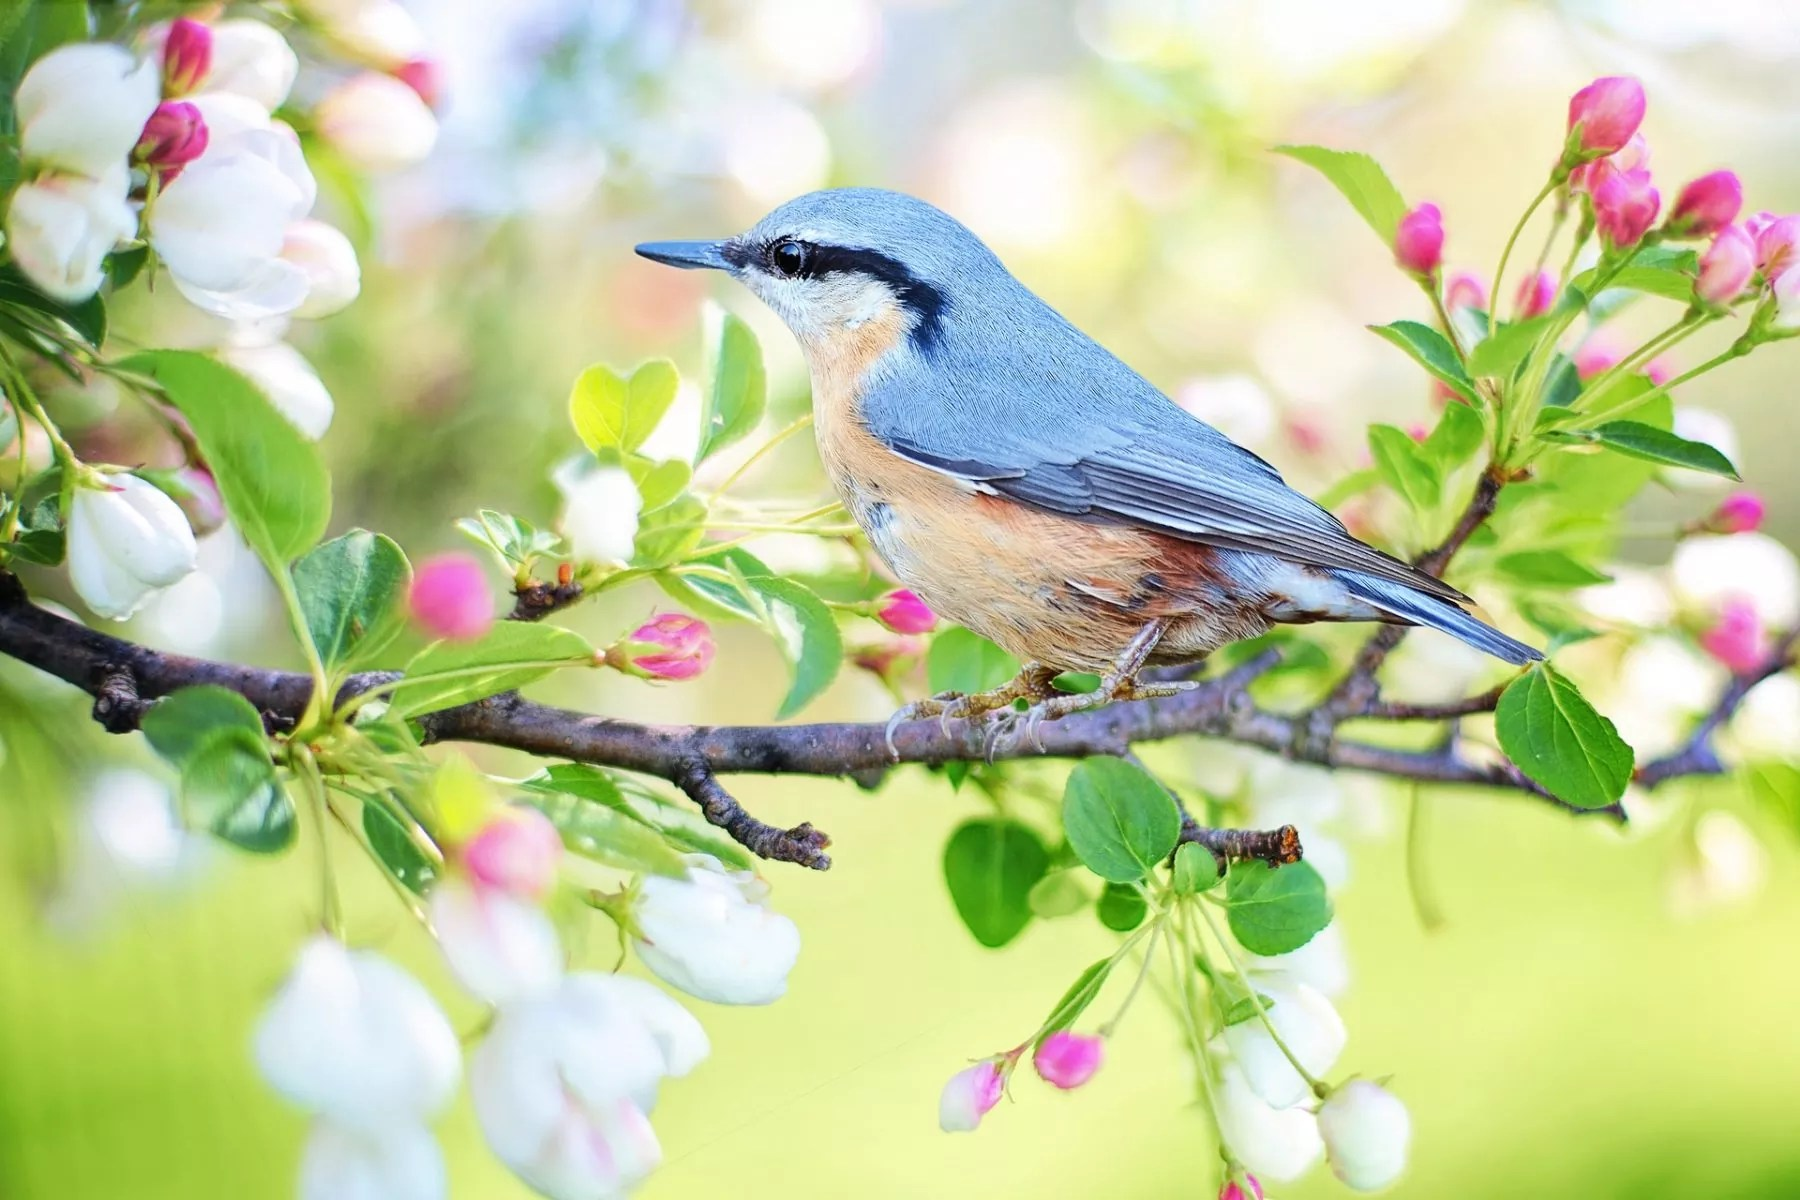 Bluebird sitting in a tree of budding blossoms.